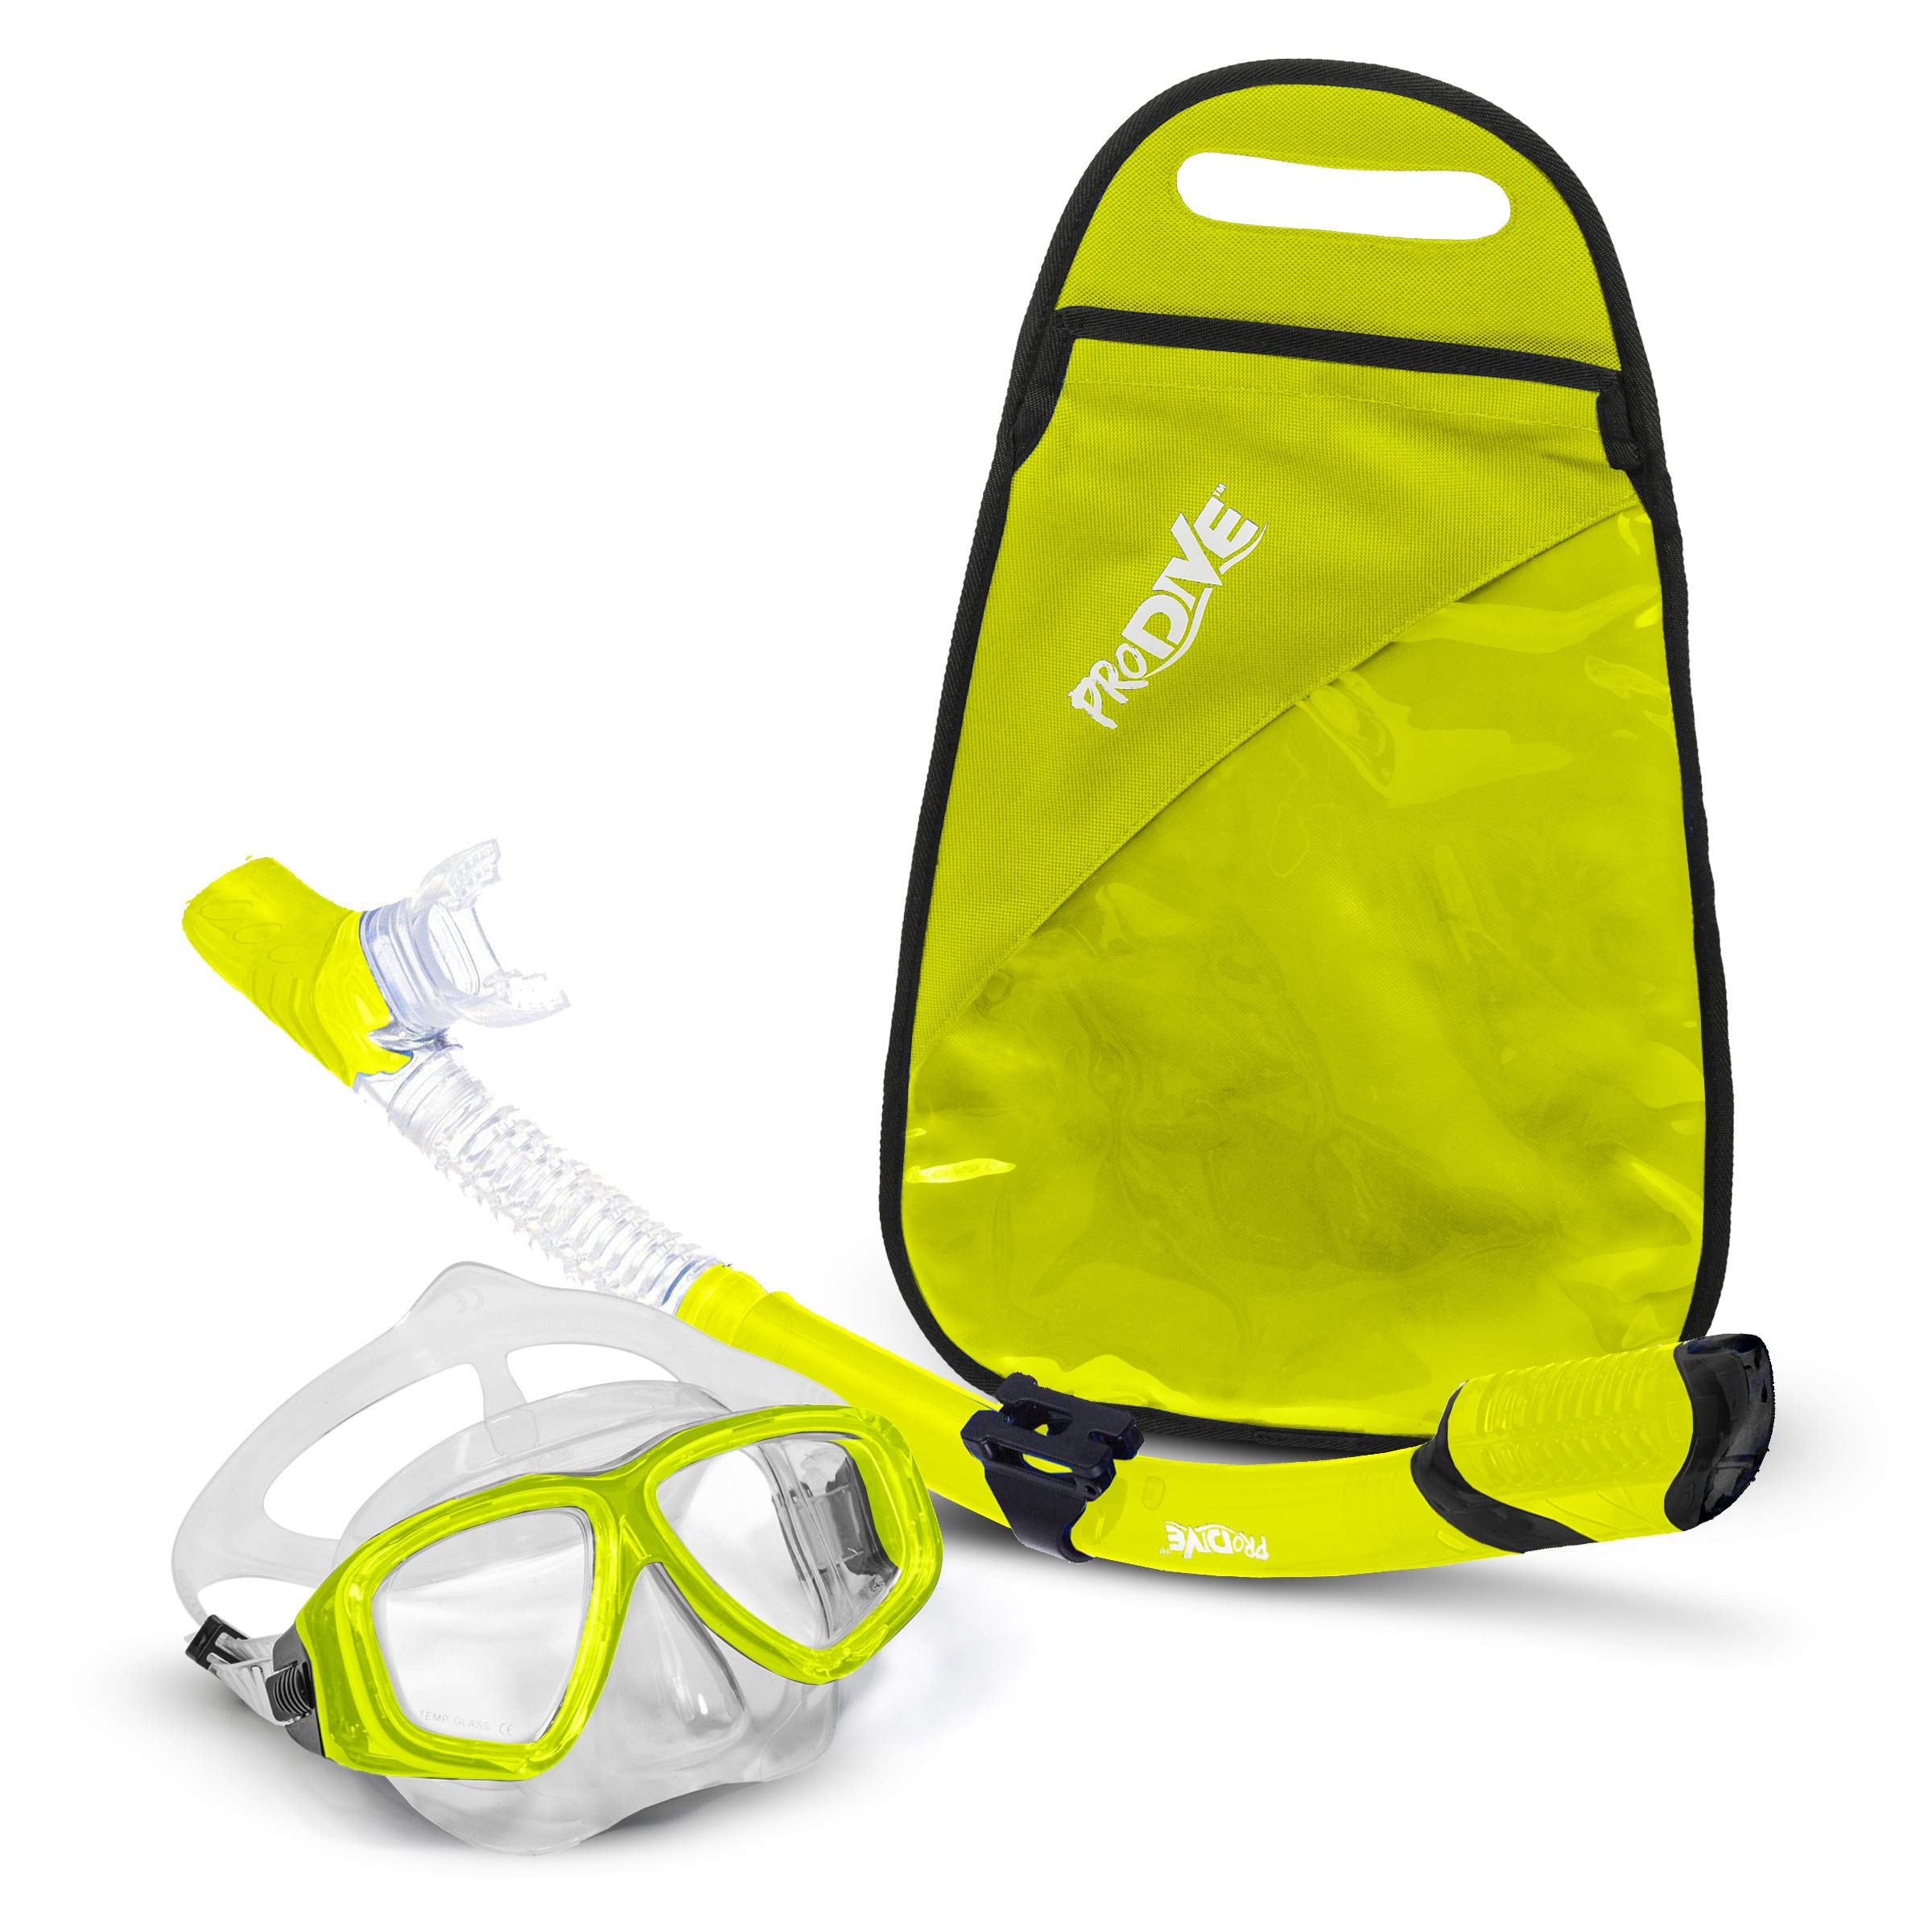 PRODIVE Premium Dry Top Snorkel Set - Impact Resistant Tempered Glass Diving Mask, Watertight and Anti-Fog Lens for Best Vision, Easy Adjustable Strap, Waterproof Gear Bag Included (Yellow)